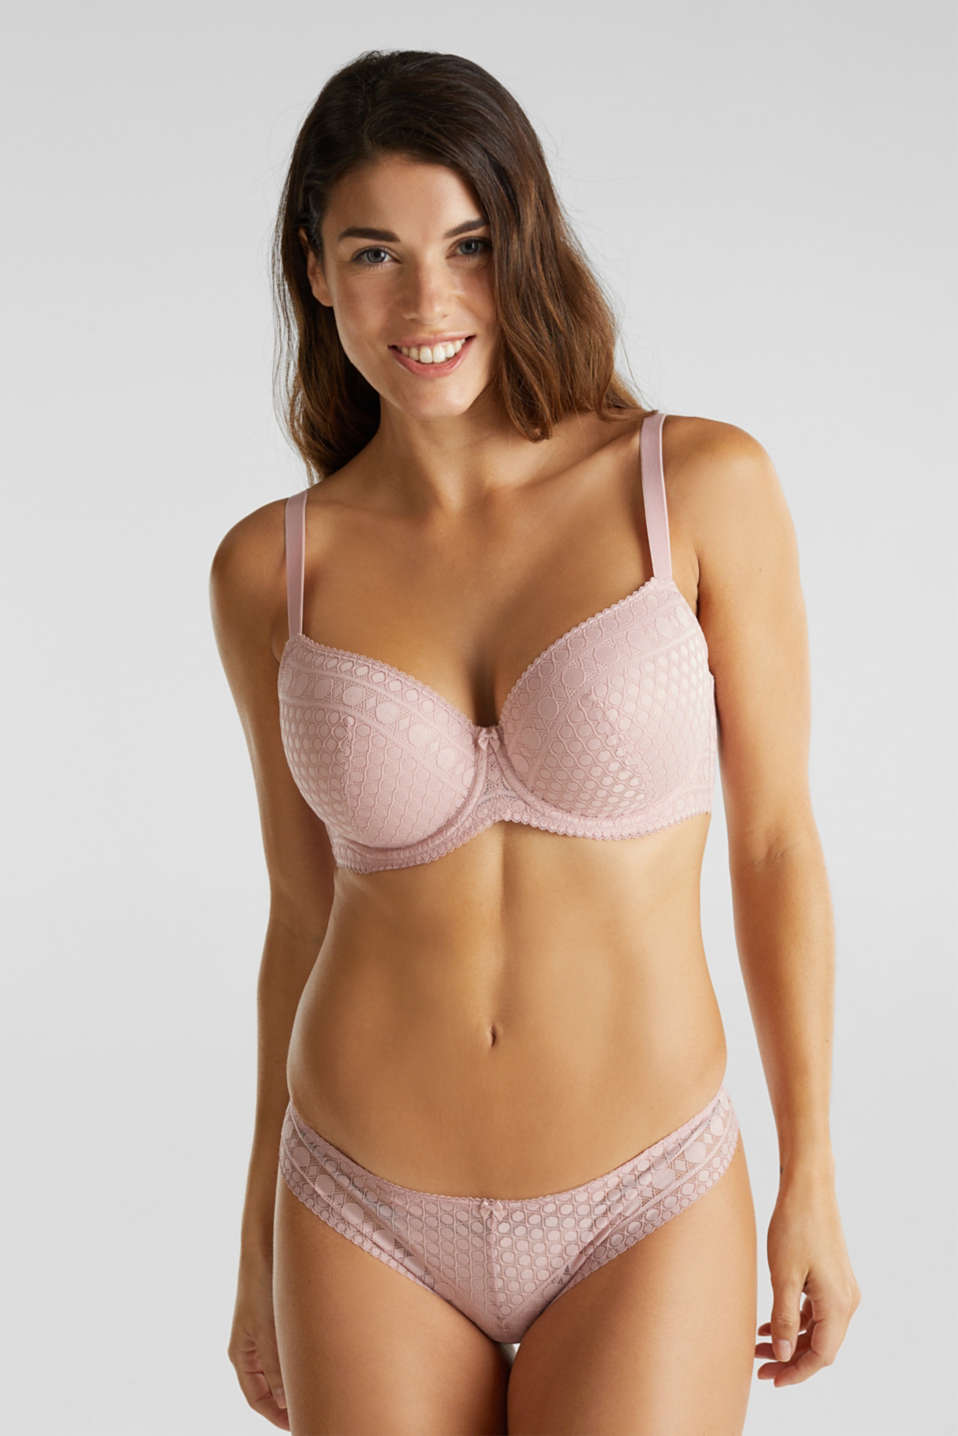 Padded, underwire bra for large cup sizes, OLD PINK, detail image number 0